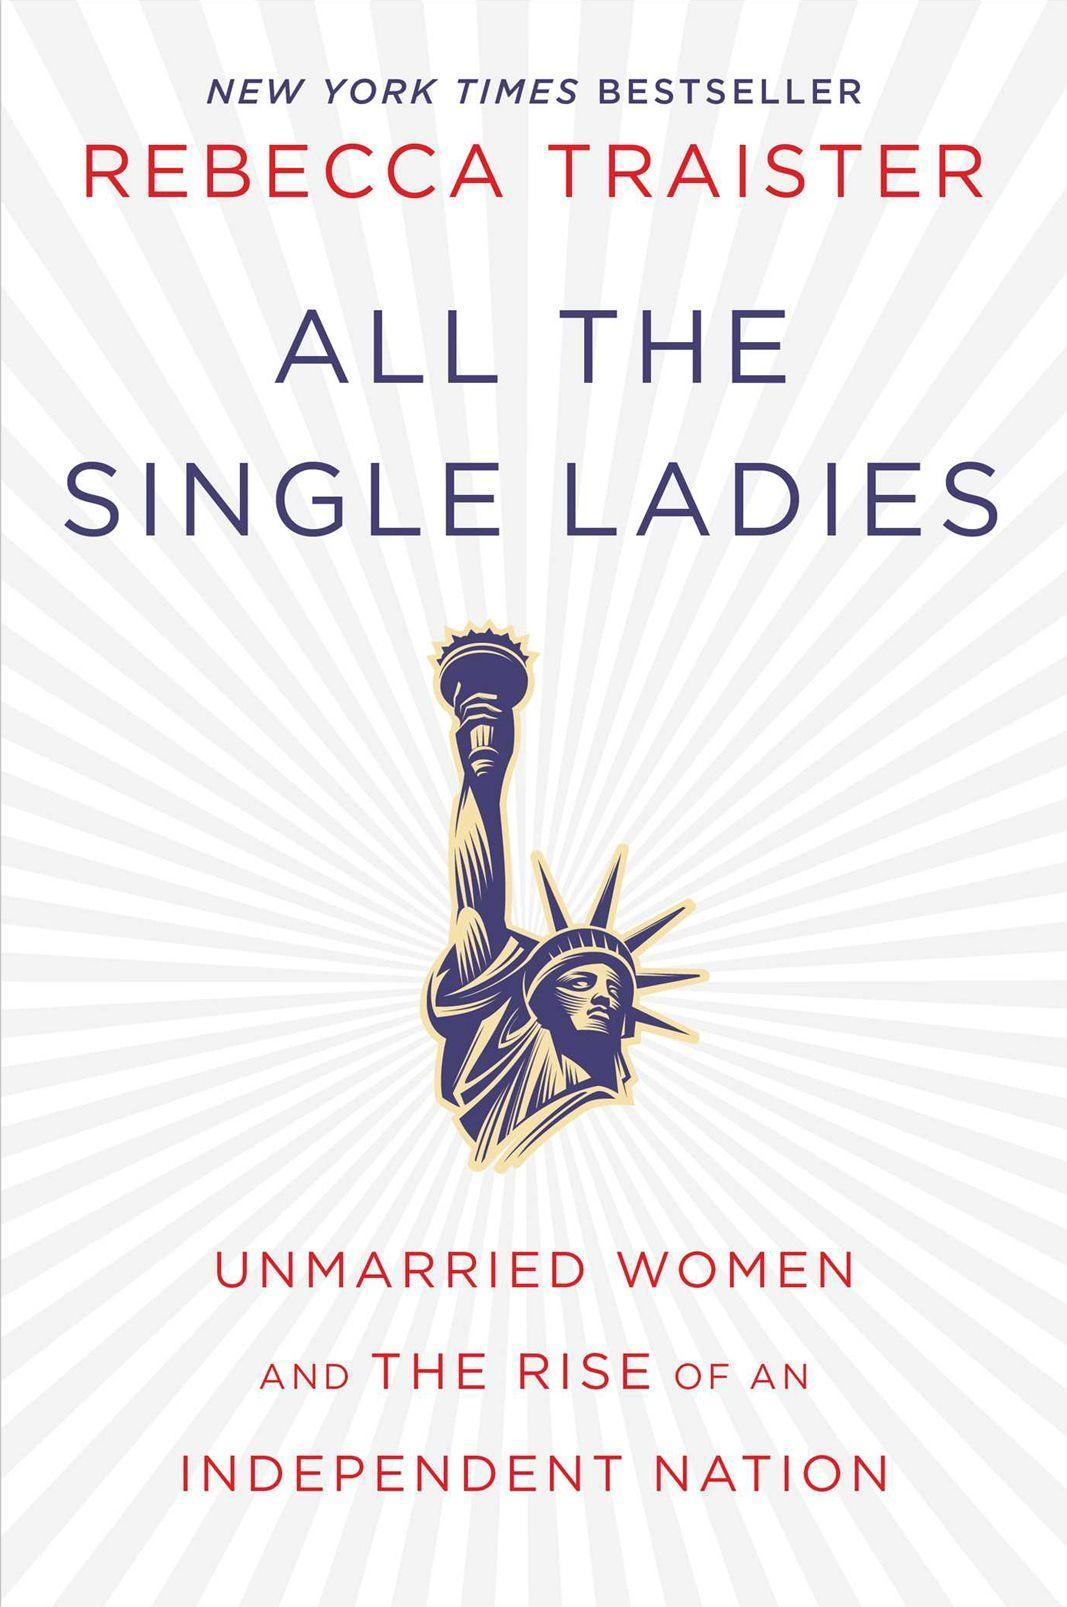 """<p><strong><em>All The Single Ladies</em></strong></p> <p>By Rebecca Traister</p> <p>You don't need us to tell you that single women are a rising political force. You might be one of the <a href=""""http://www.refinery29.com/2016/03/104893/all-the-single-ladies-rebecca-traister-book"""" rel=""""nofollow noopener"""" target=""""_blank"""" data-ylk=""""slk:increasing number of unmarried women enjoying an """"independent female adulthood"""""""" class=""""link rapid-noclick-resp"""">increasing number of unmarried women enjoying an """"independent female adulthood""""</a>, who are working to shape the future of the U.S. and to ensure it works for them. American author and journalist Rebecca Traister combines history, reportage and personal memoir to suggest that unmarried women are re-writing what it means to put a ring on it.</p>"""